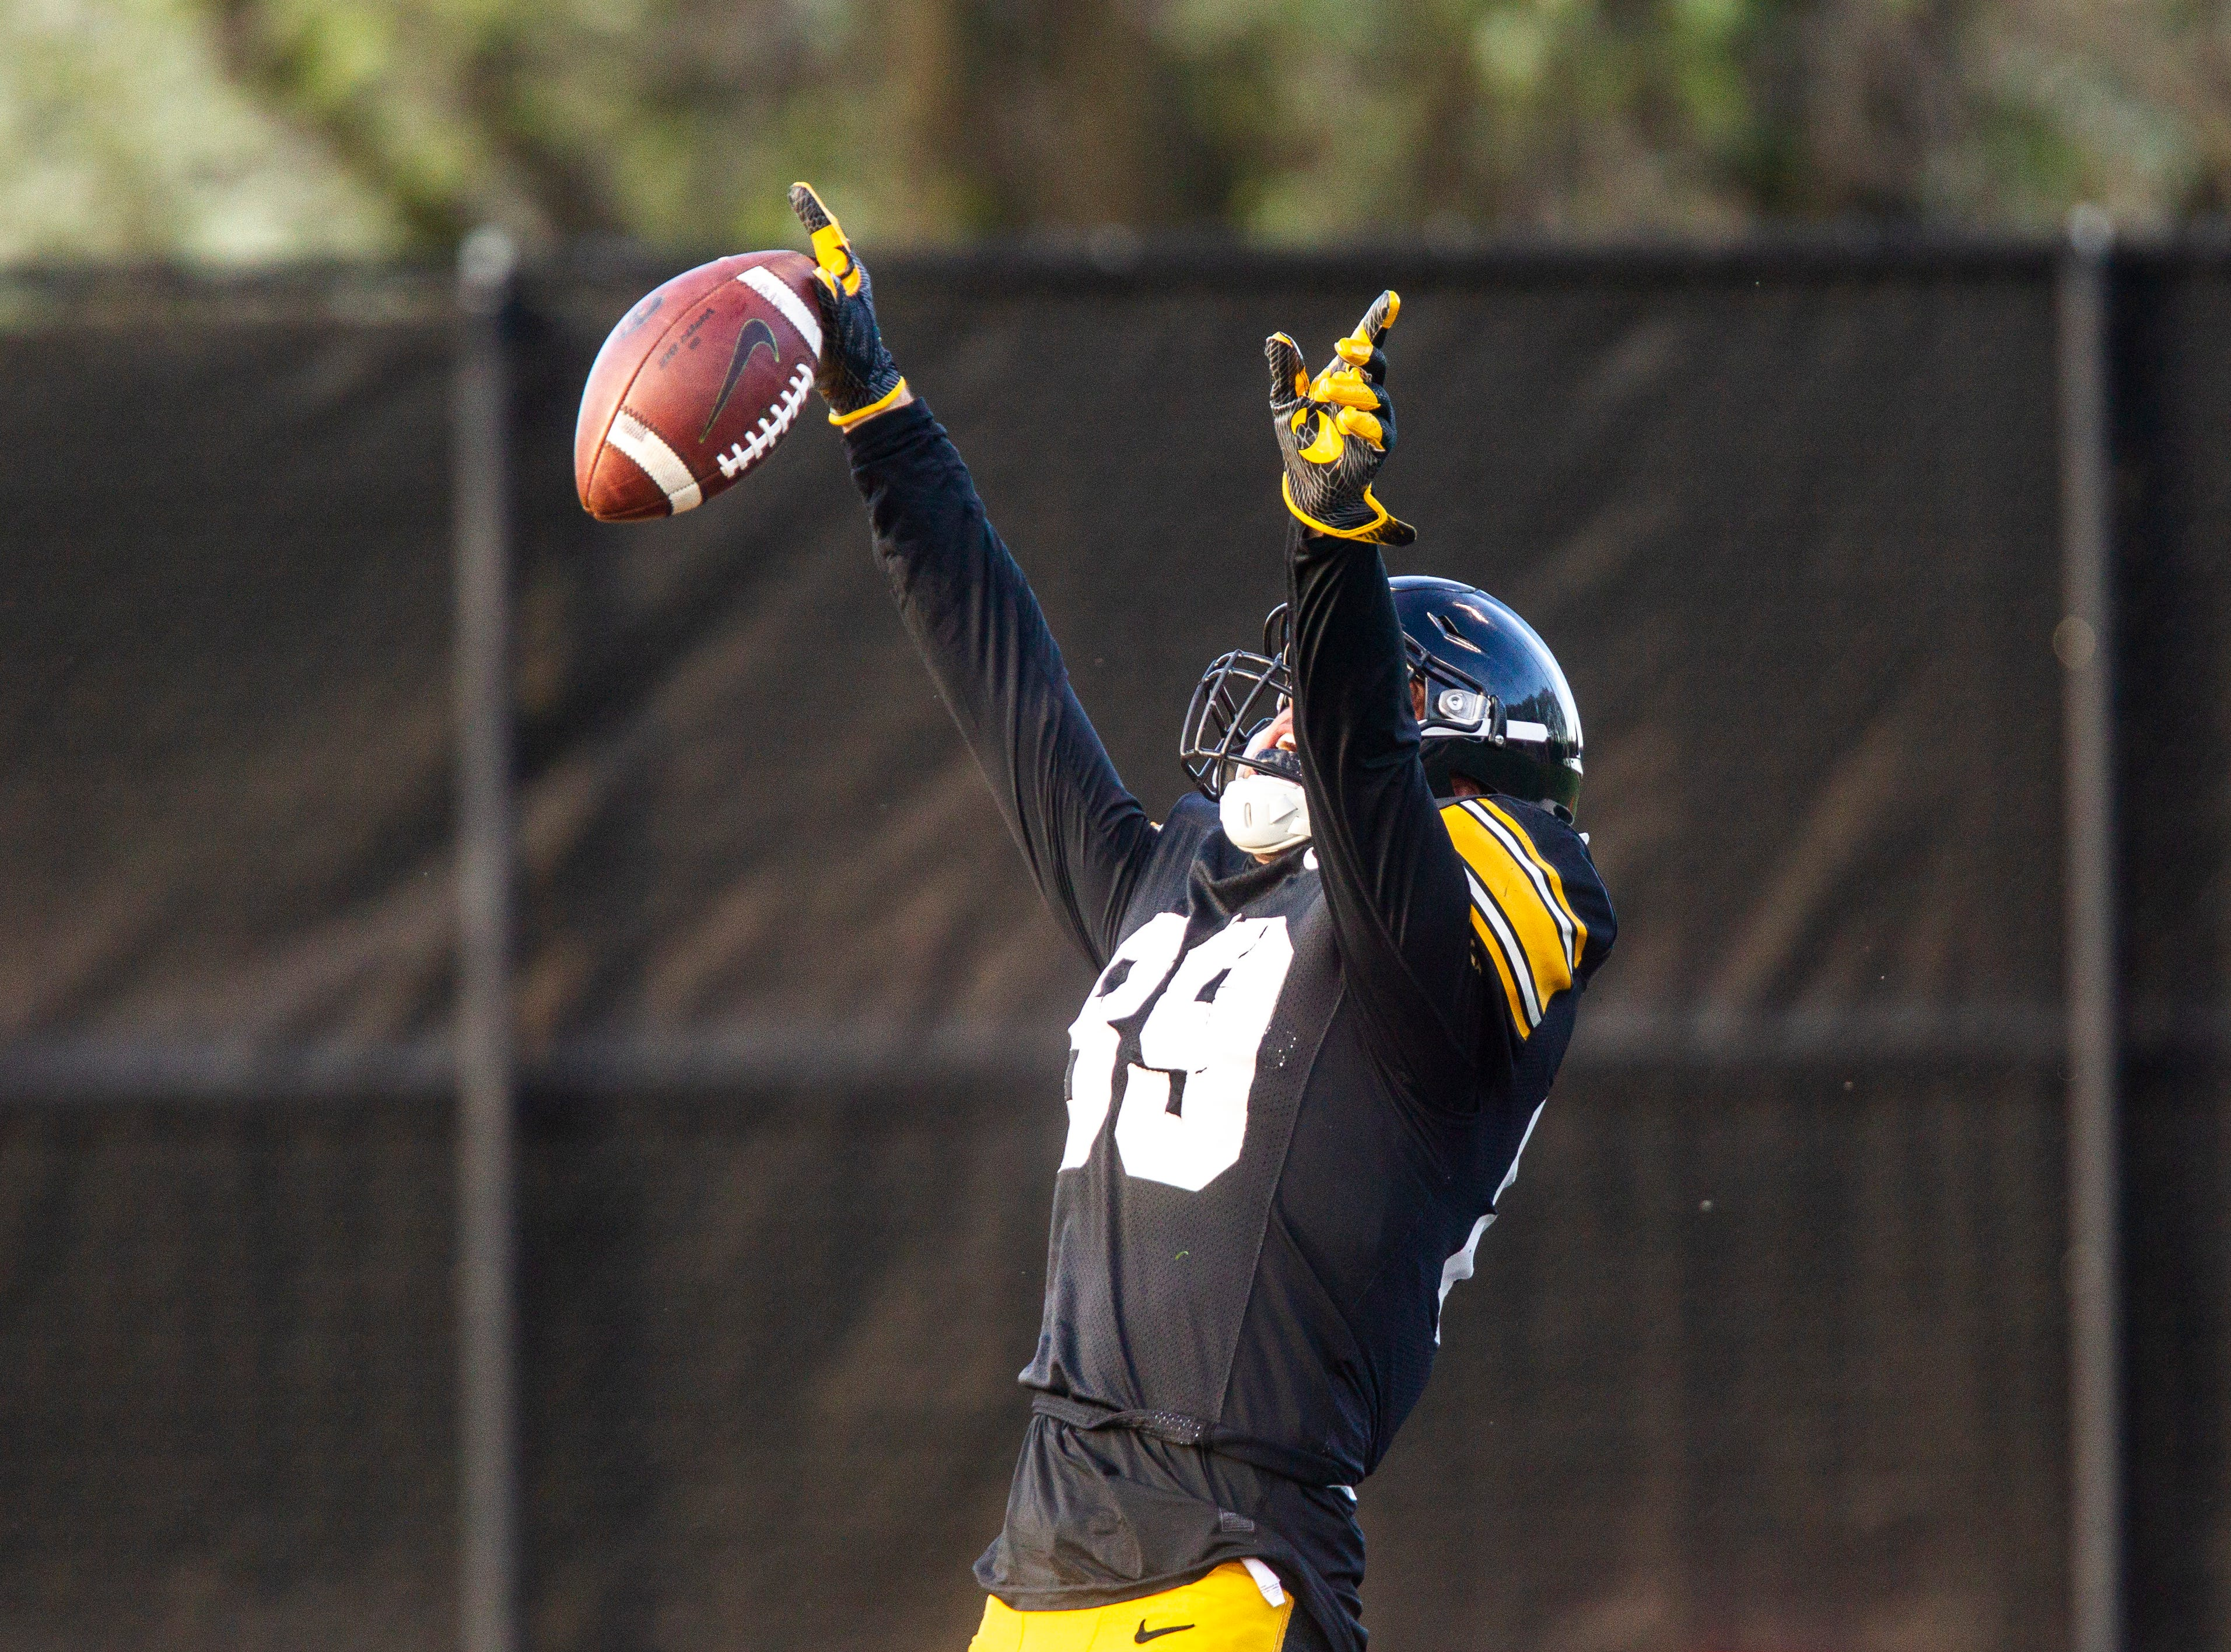 Iowa wide receiver Nico Ragaini (89) celebrates in the endzone after catching a touchdown pass during the final spring football practice, Friday, April 26, 2019, at the University of Iowa outdoor practice facility in Iowa City, Iowa.